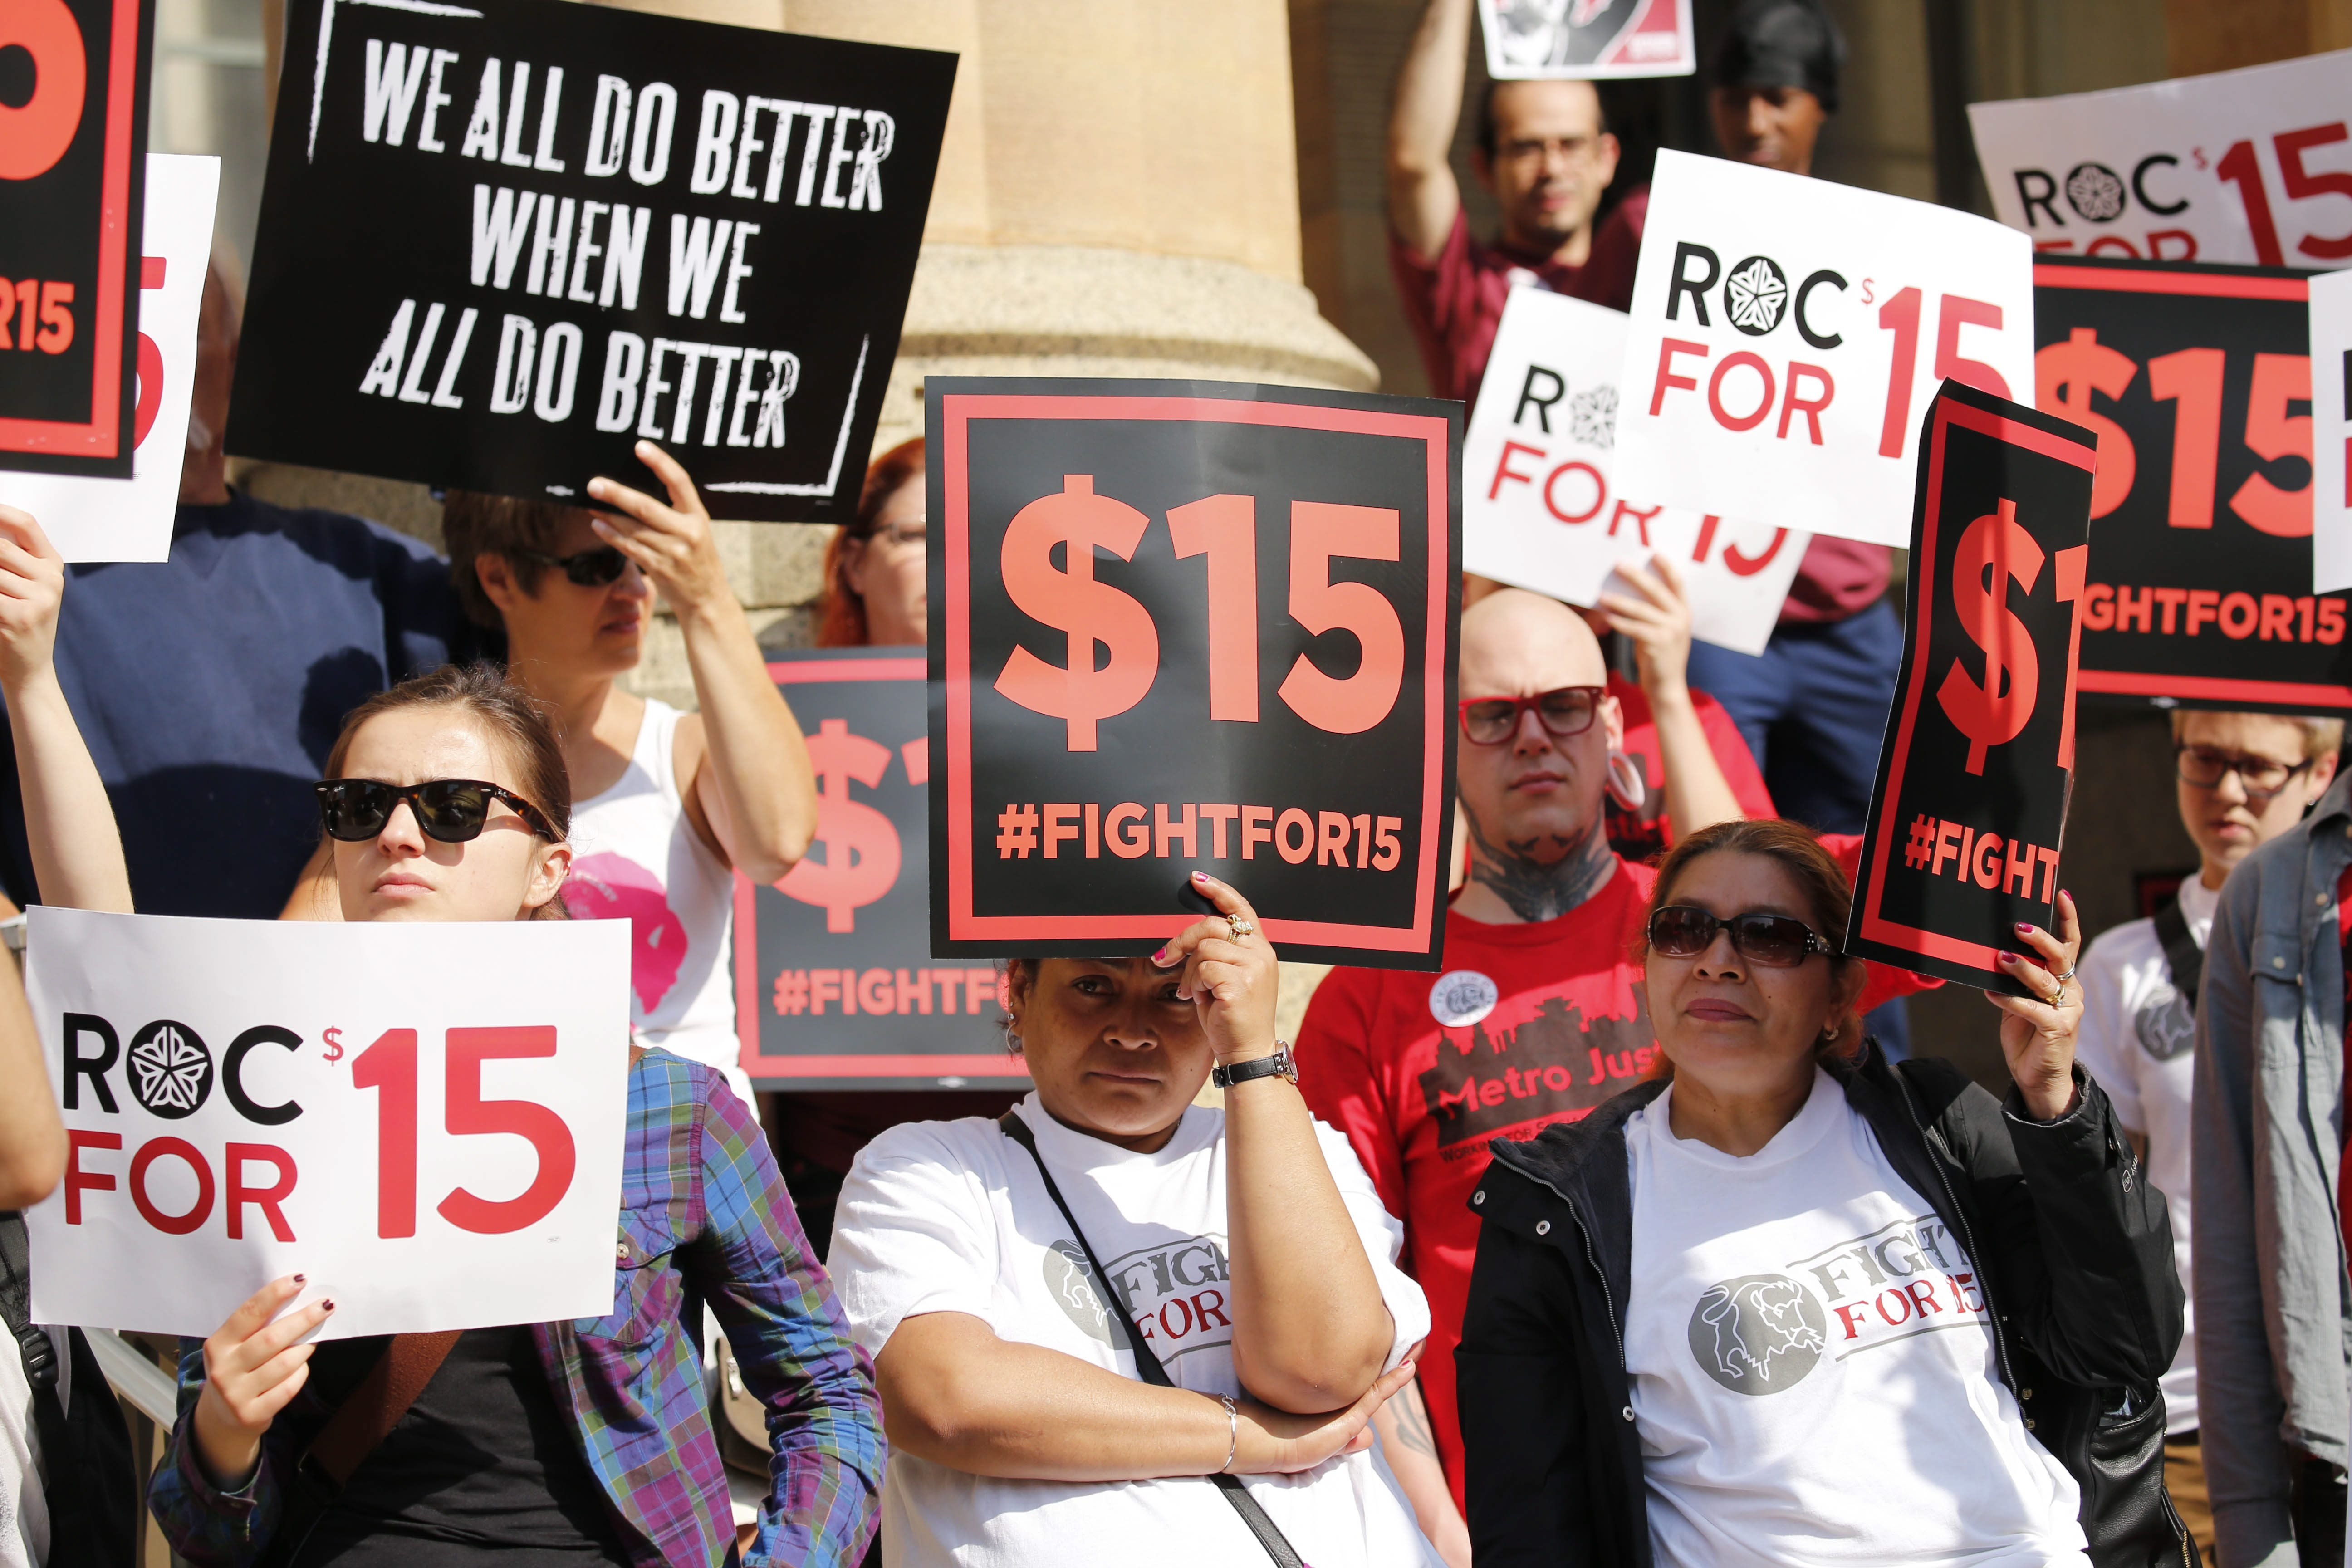 Demonstrators seeking a $15 minimum wage gathered on the steps of City Hall in June as the governor's Wage Board was meeting inside.